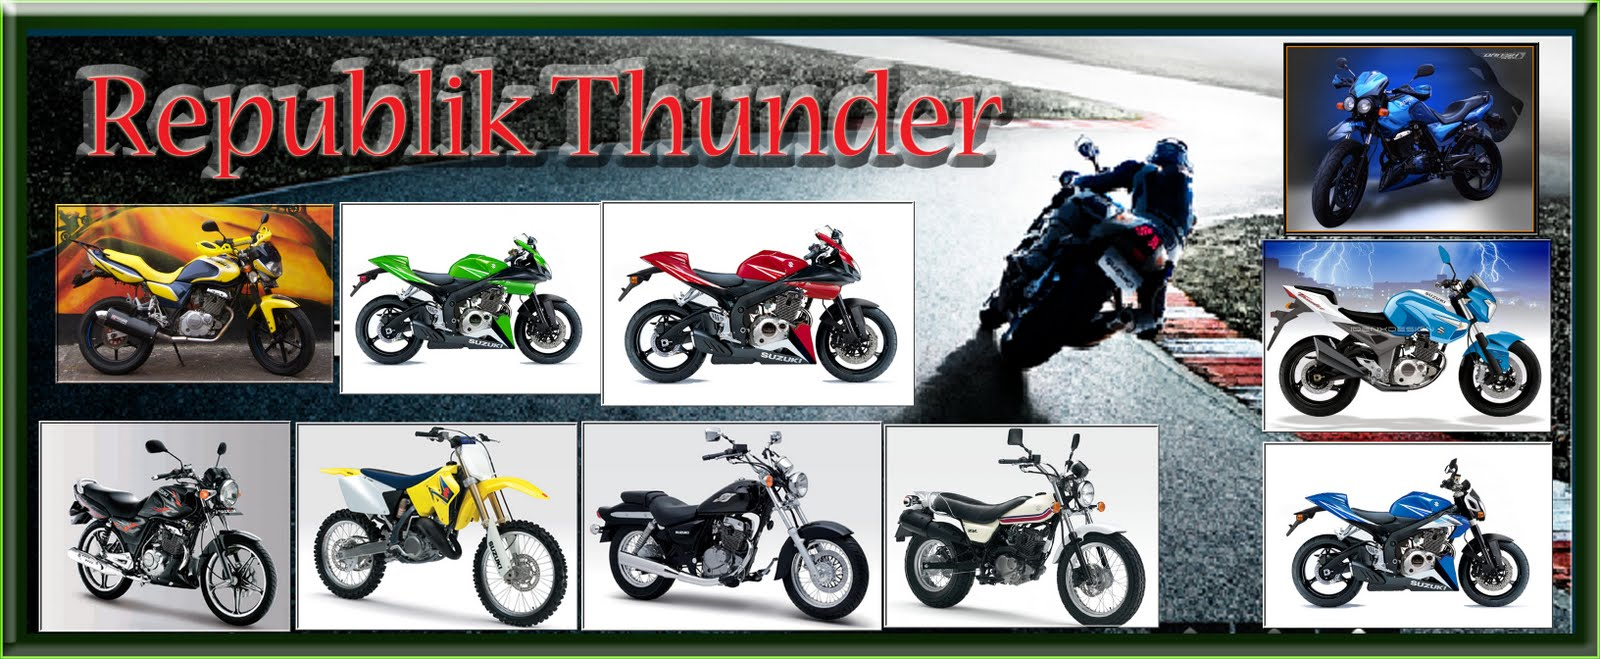 REPUBLIK THUNDER